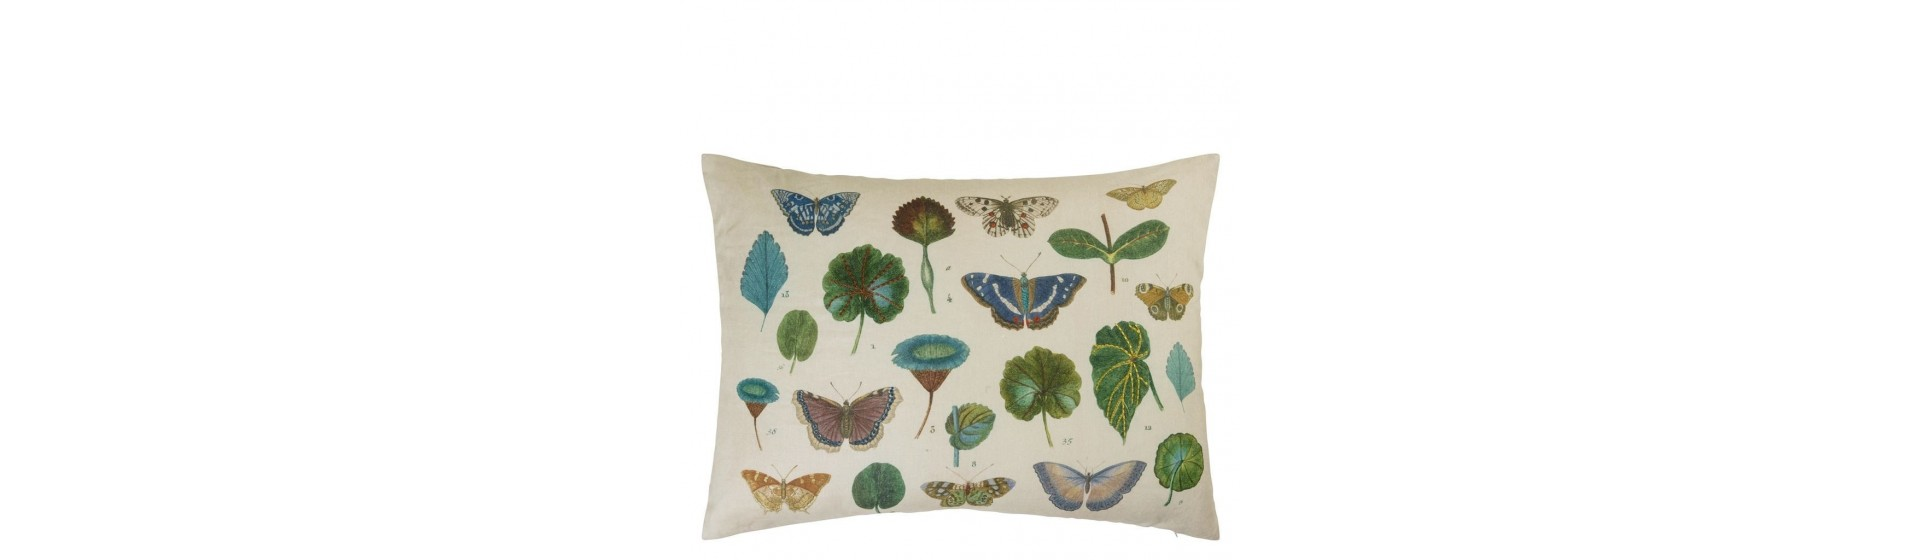 A LEAF AND BUTTERFLY STUDY Cojines